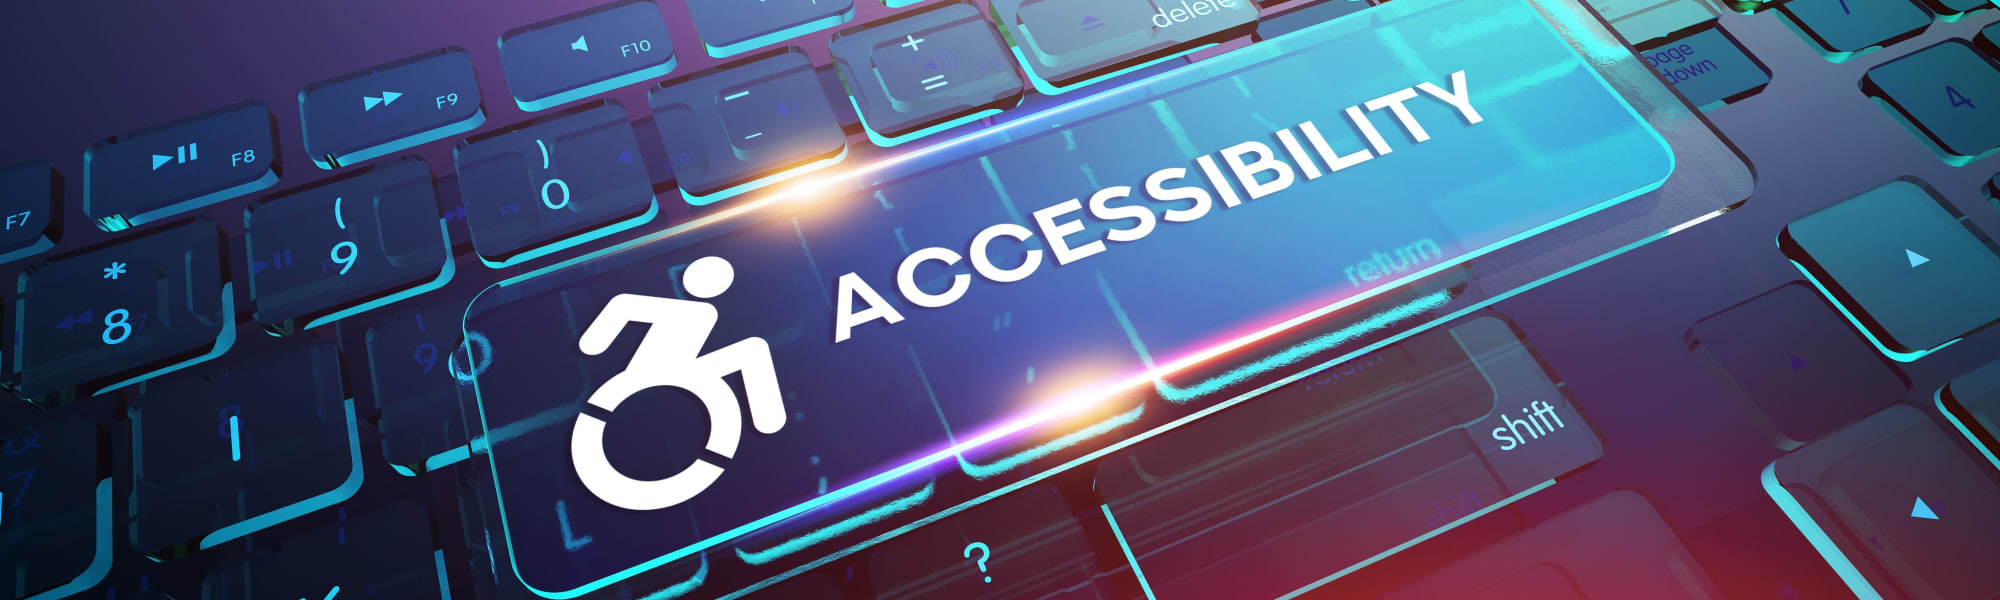 Accessibility policy for Lux on Main in Carrollton, Texas